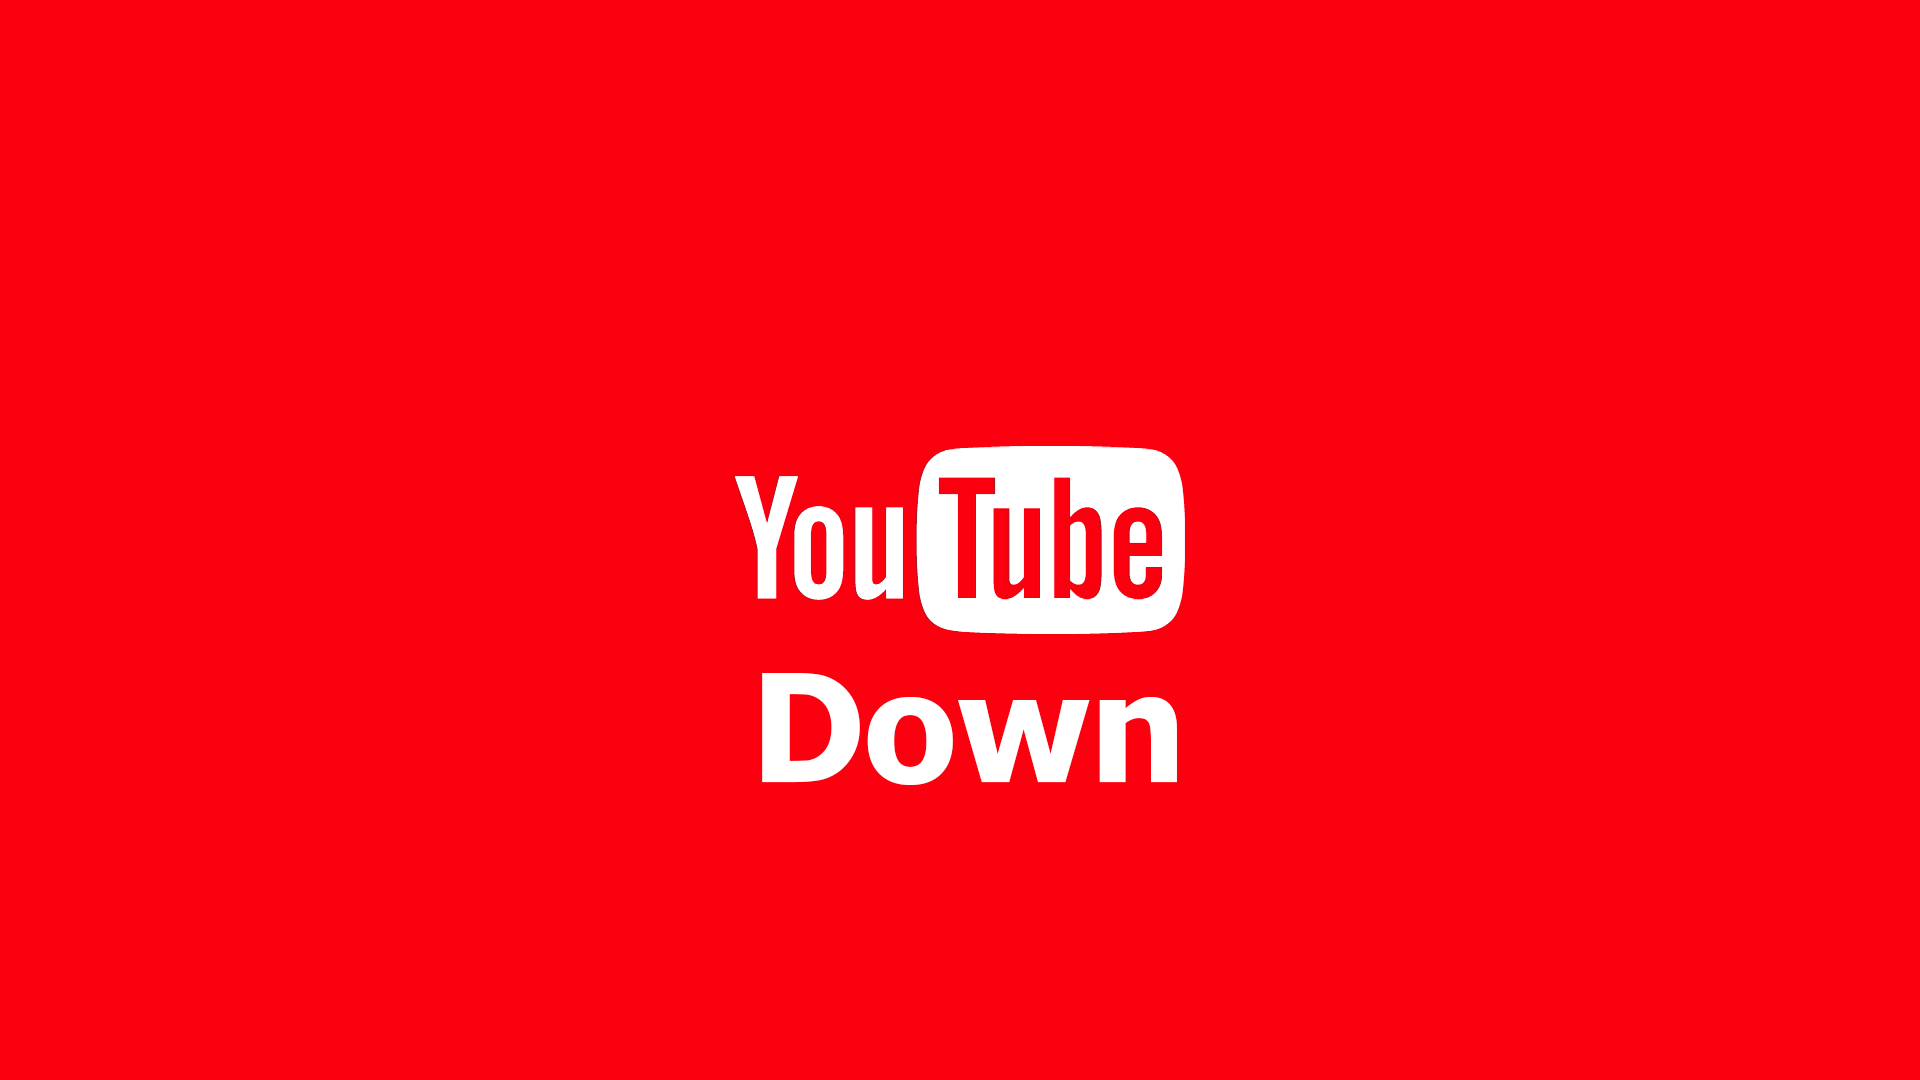 YouTube was down but now it's back • KAMPURA